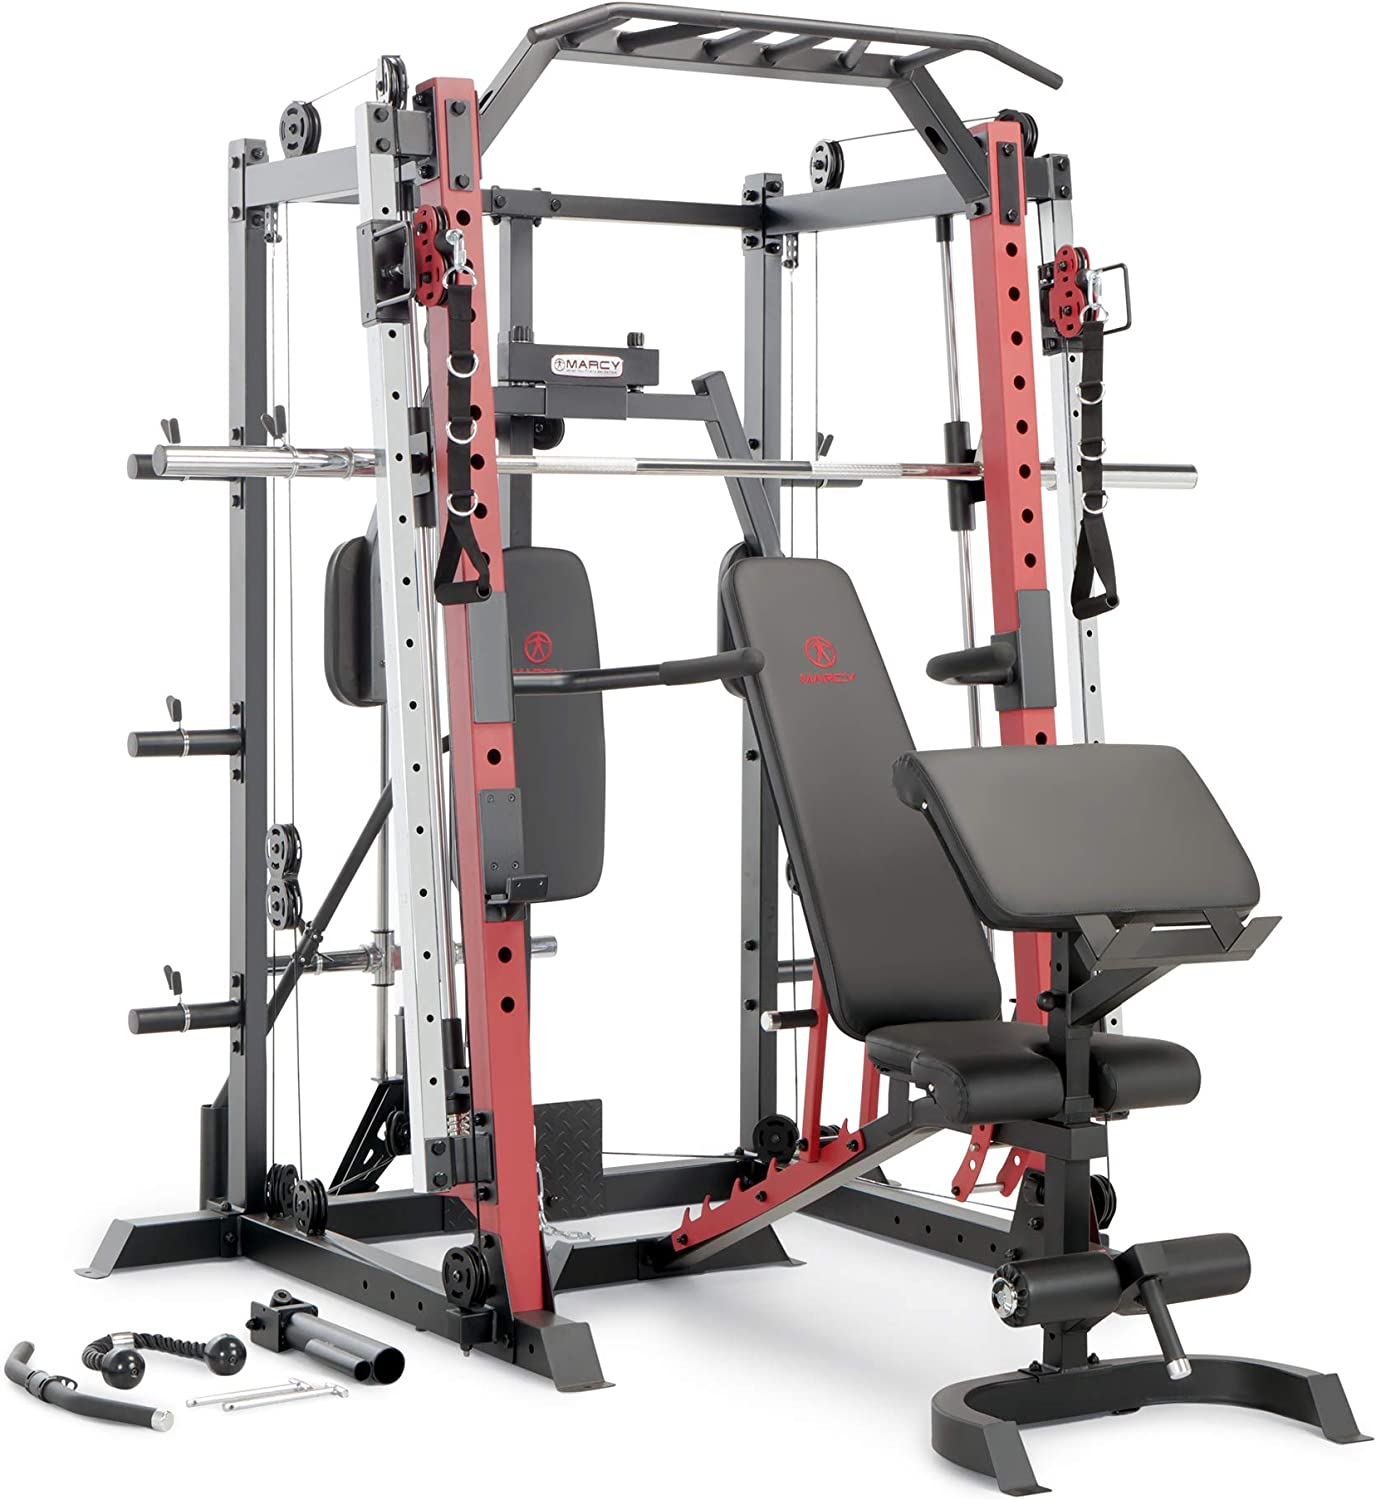 Best Home Gyms (2021): Top 10 Amazing Workout Equipment 12